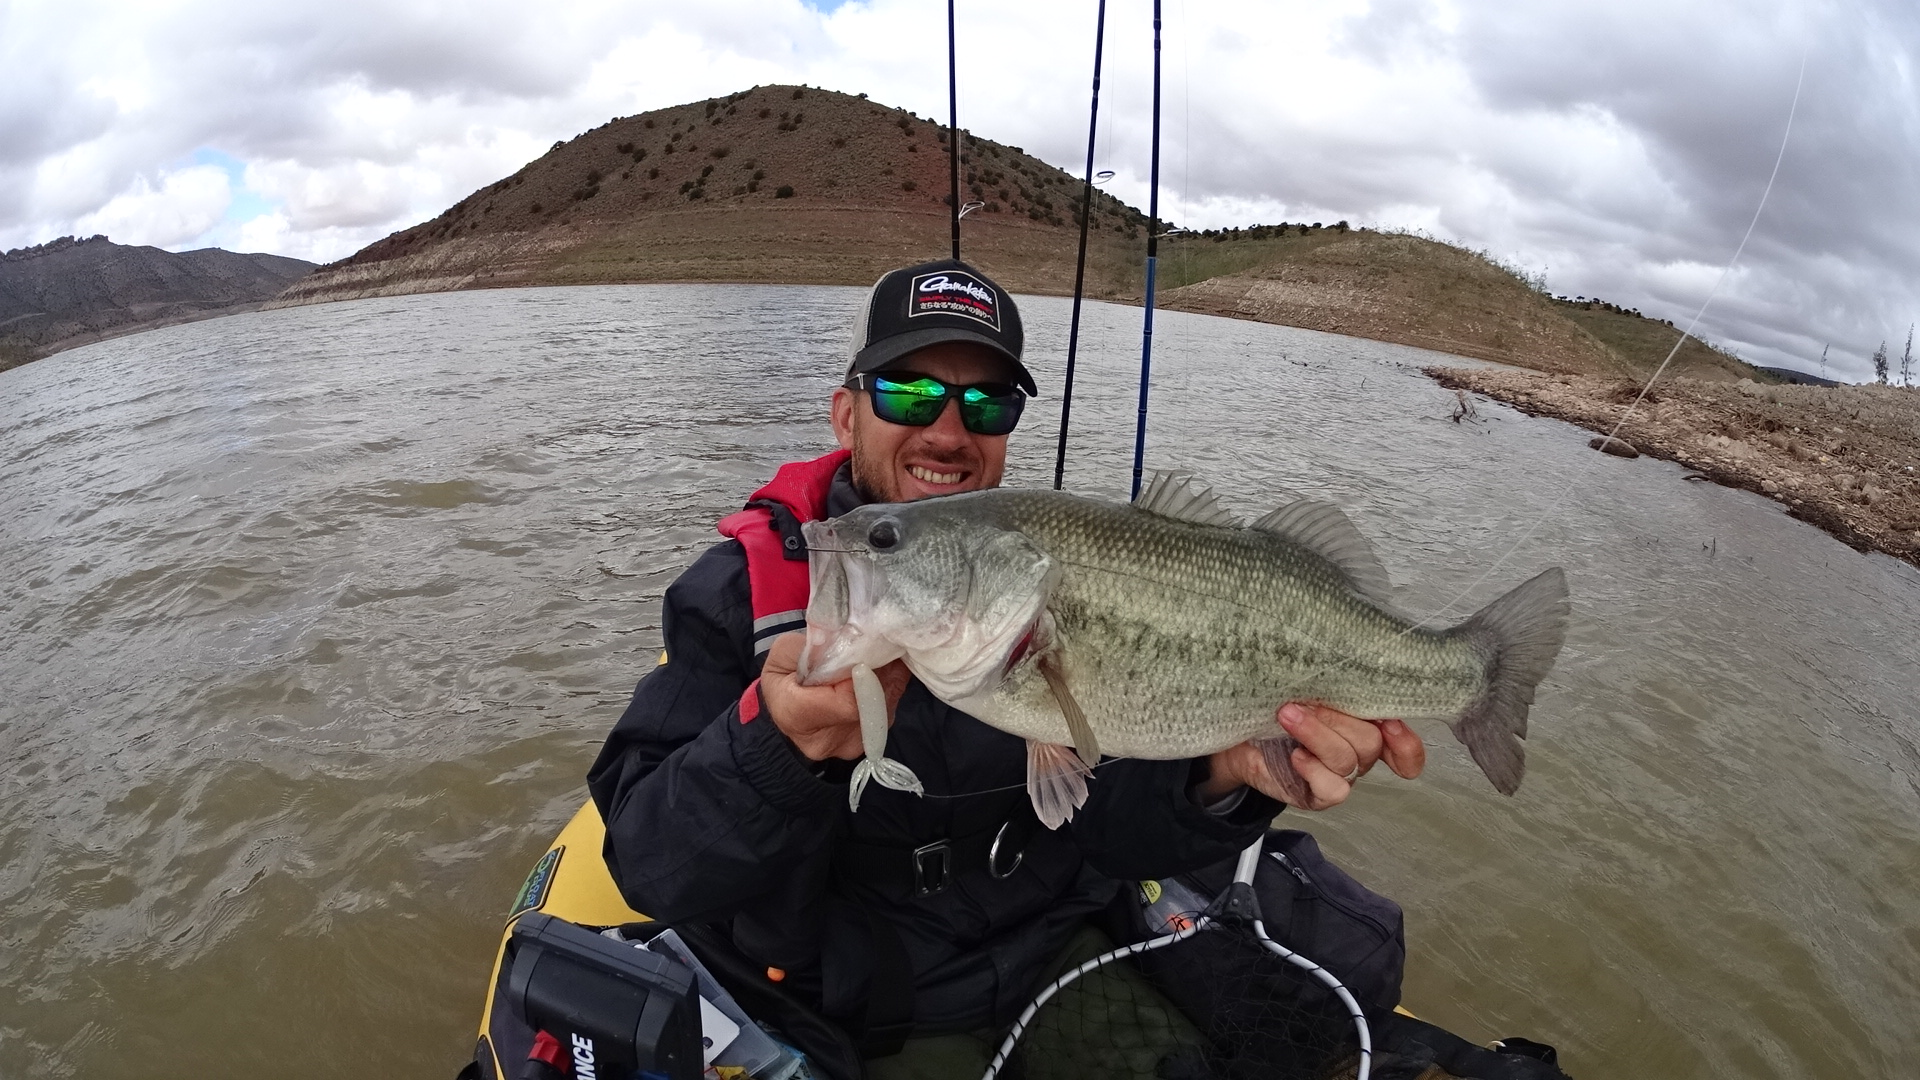 I planned to head out to a long flat, when I arrived at that bank it was impossible to throw a spinnerbait and not get hung up over the spot I knew bass could be using. So, even with a strong wind, I switched to a weightless white Fat Ika.